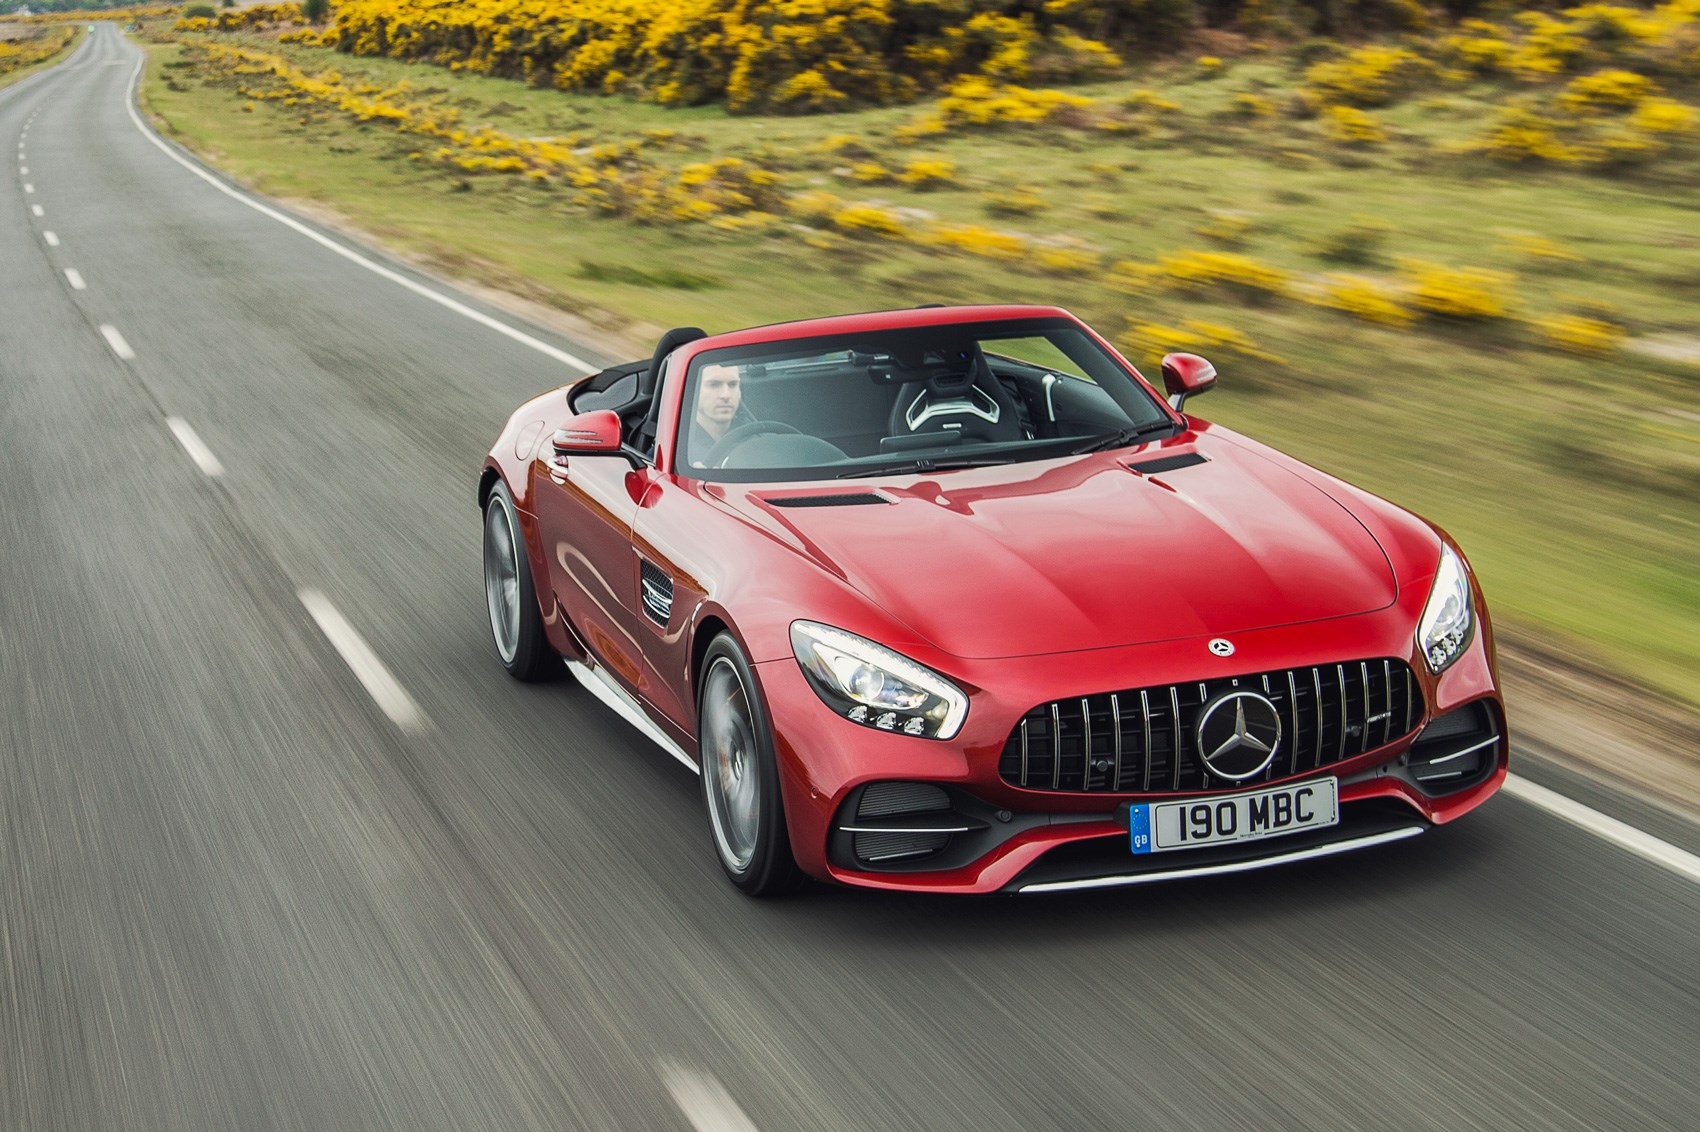 mercedes amg gt c roadster 2017 uk road test review by car magazine. Black Bedroom Furniture Sets. Home Design Ideas